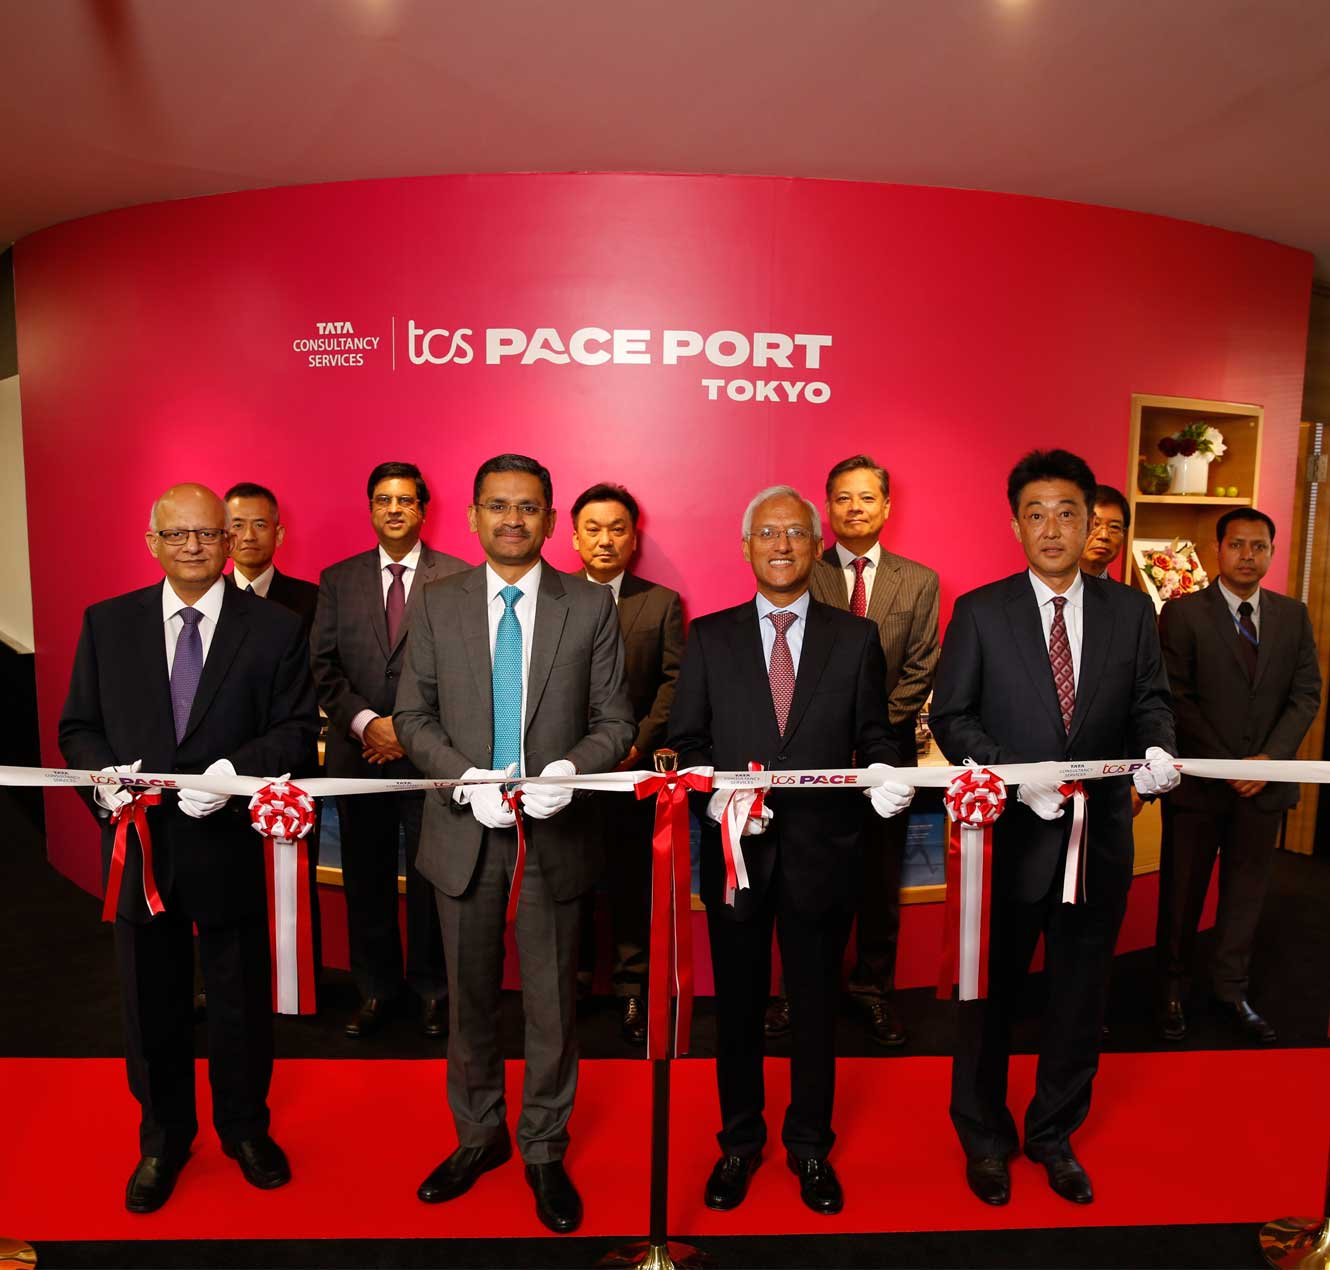 TCS Leadership at Pace Port Tokyo Launch